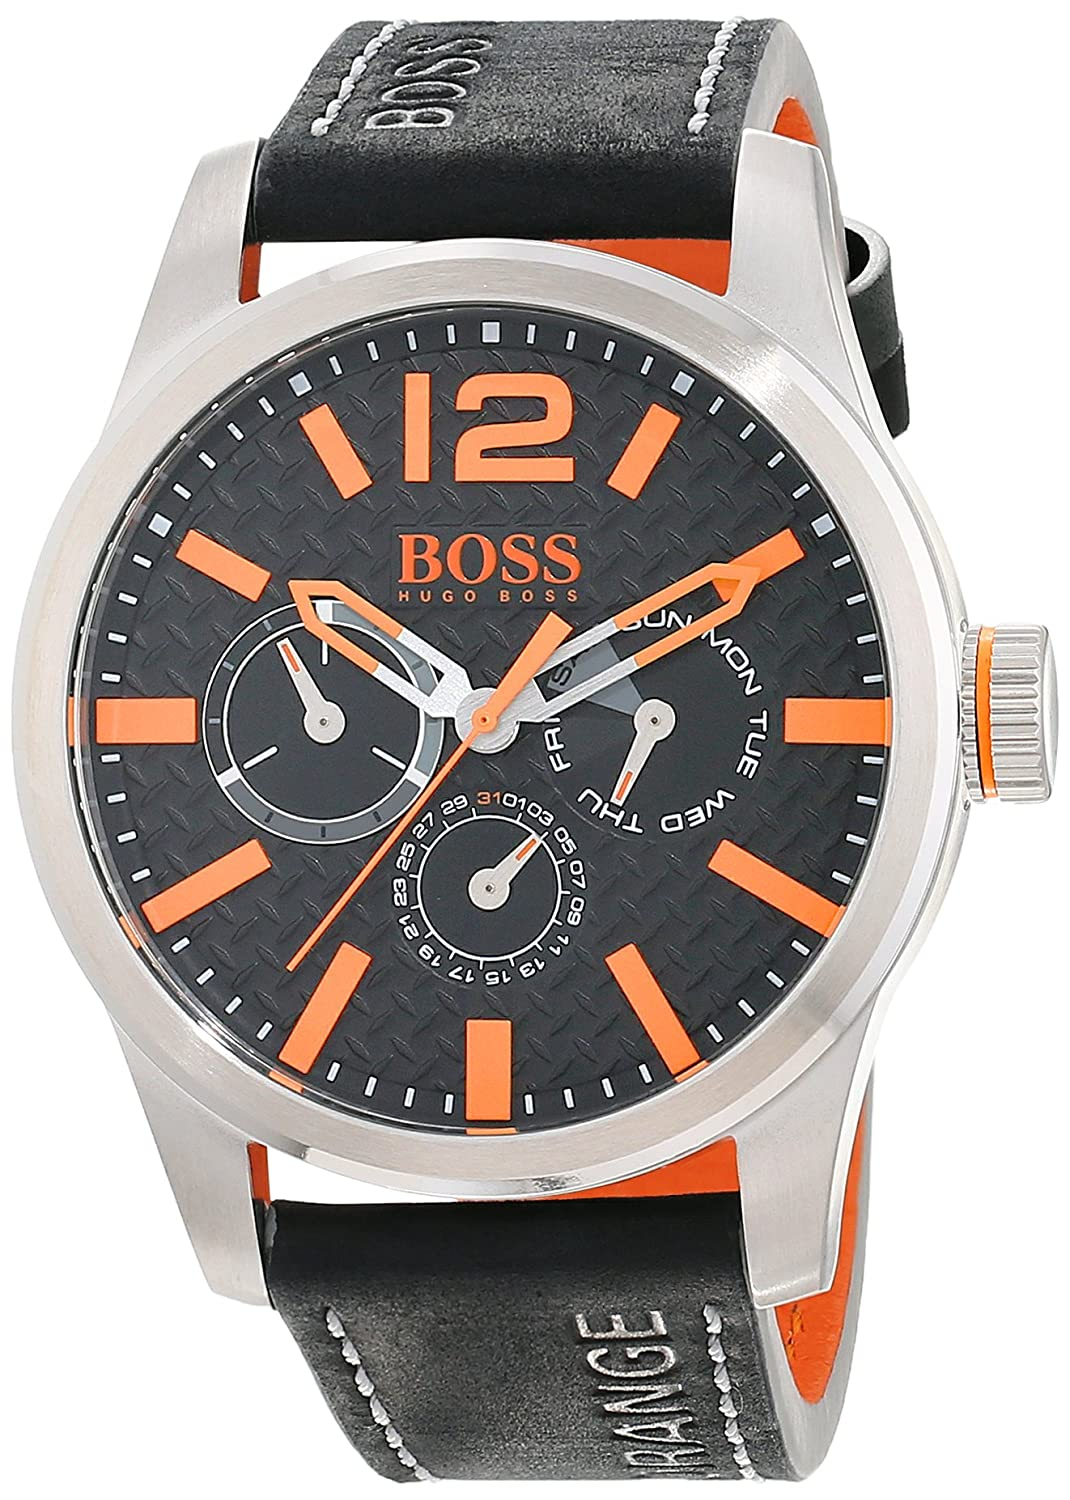 BOSS Orange Herren-Armbanduhr PARIS Multieye Analog Quarz Leder 1513228